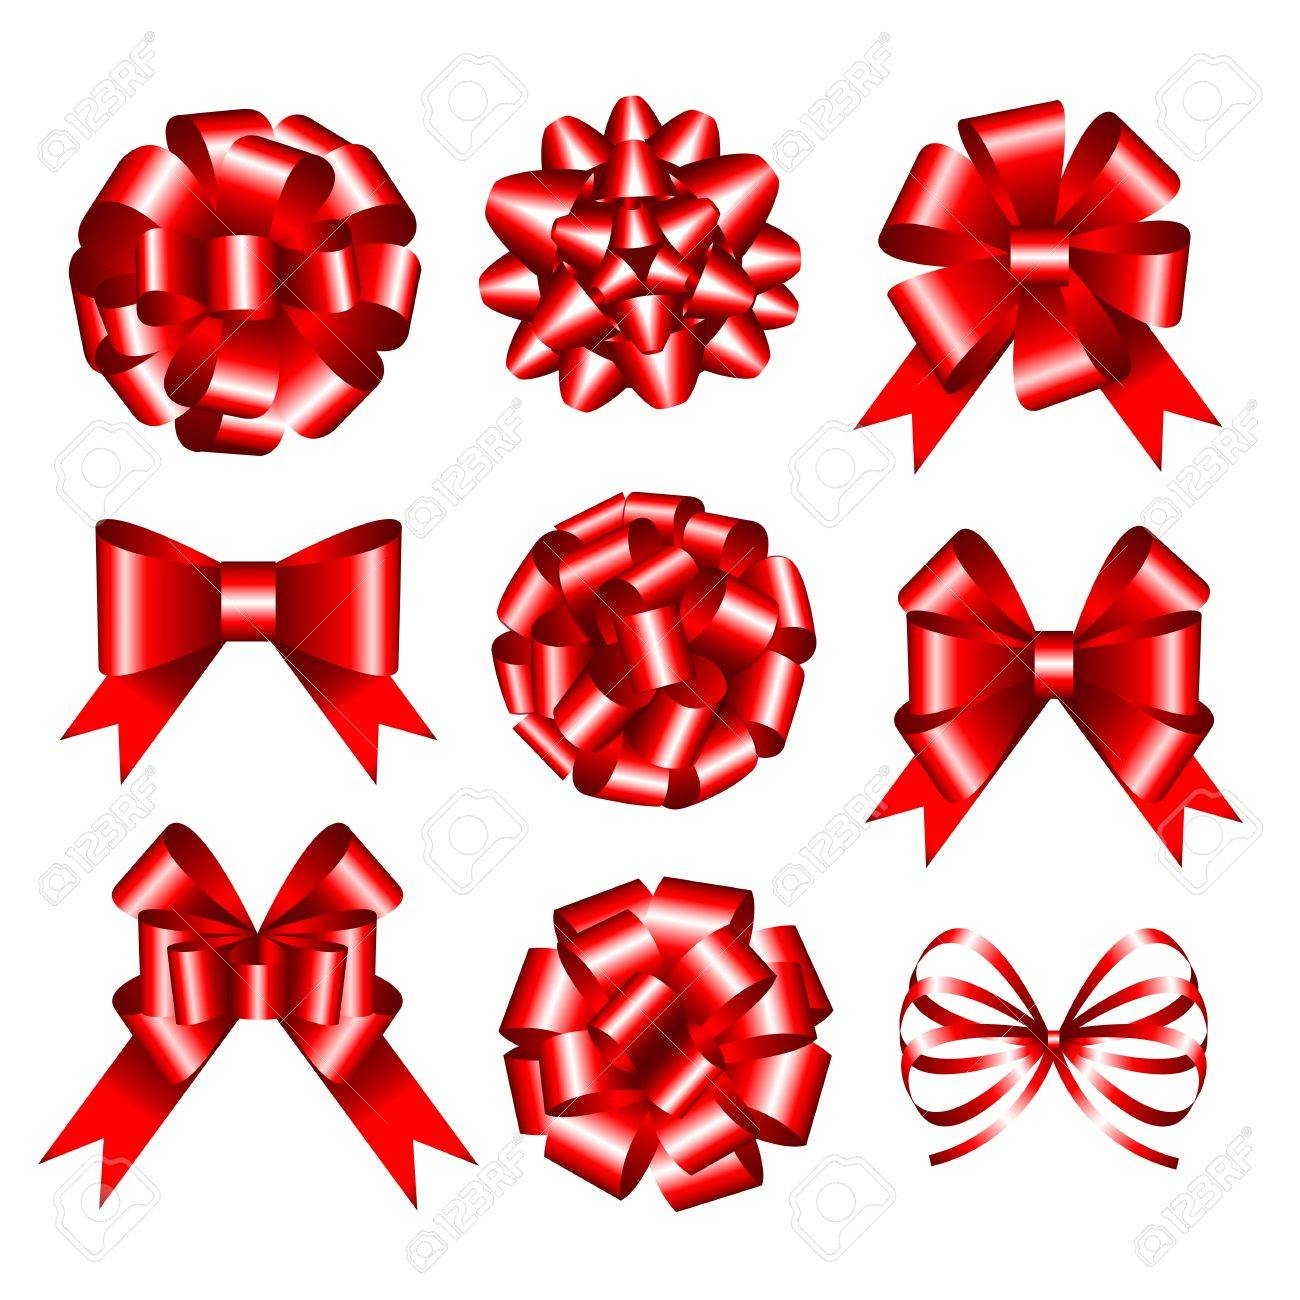 Set of red gift bows illustration Stock Vector - 16612273